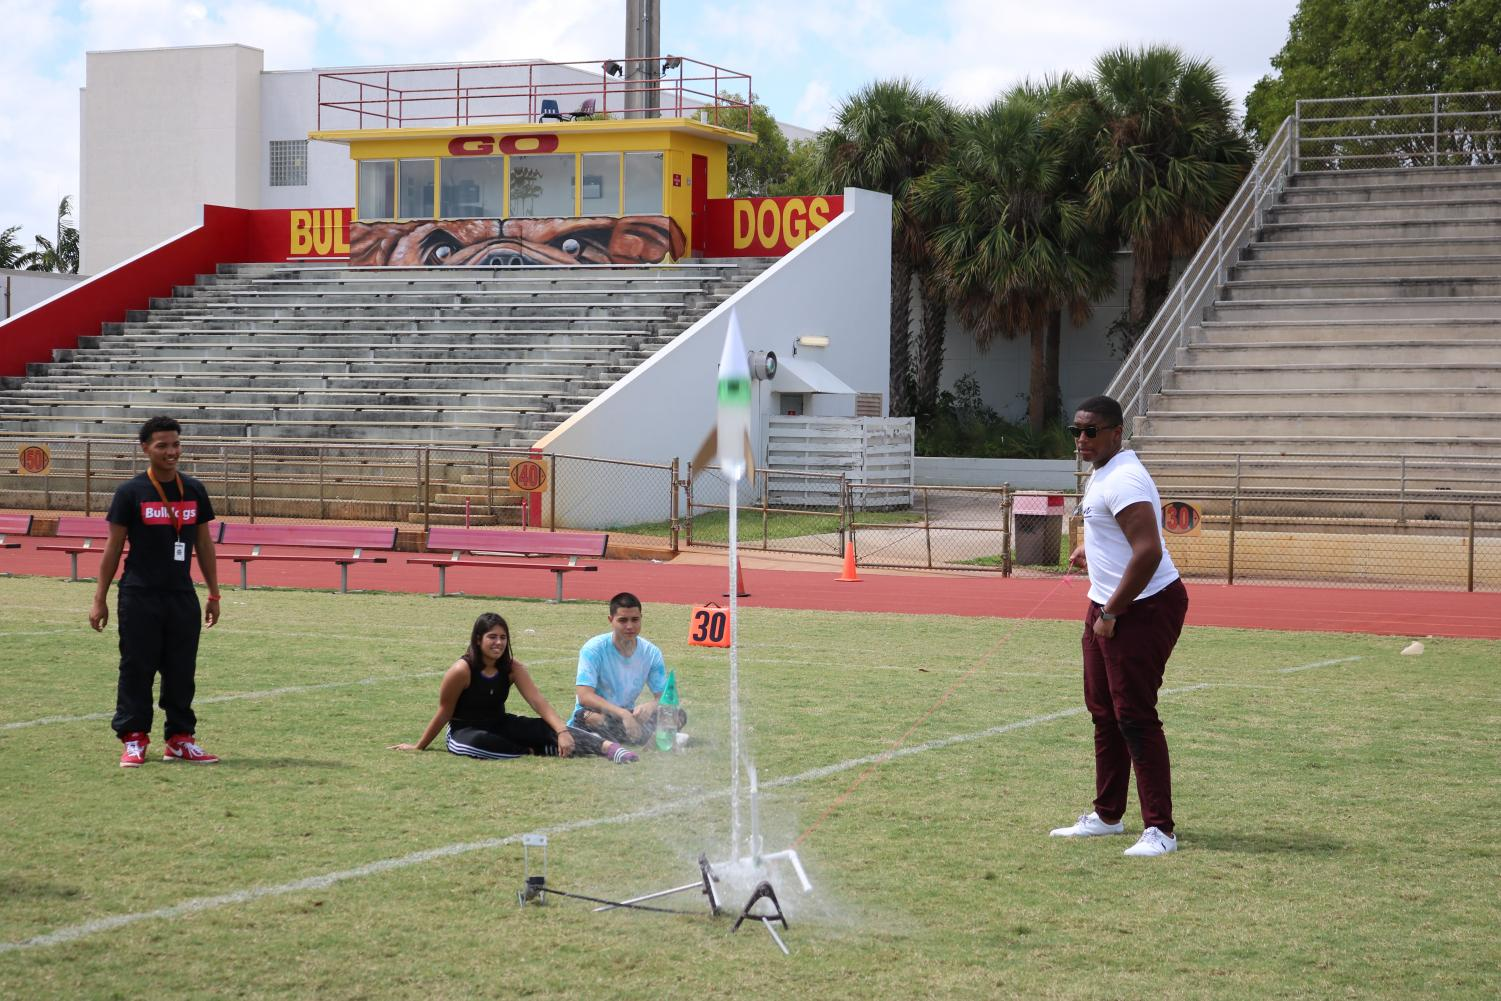 A rocket built by a student in Mr. Herrera's science class blasts off at the football field.